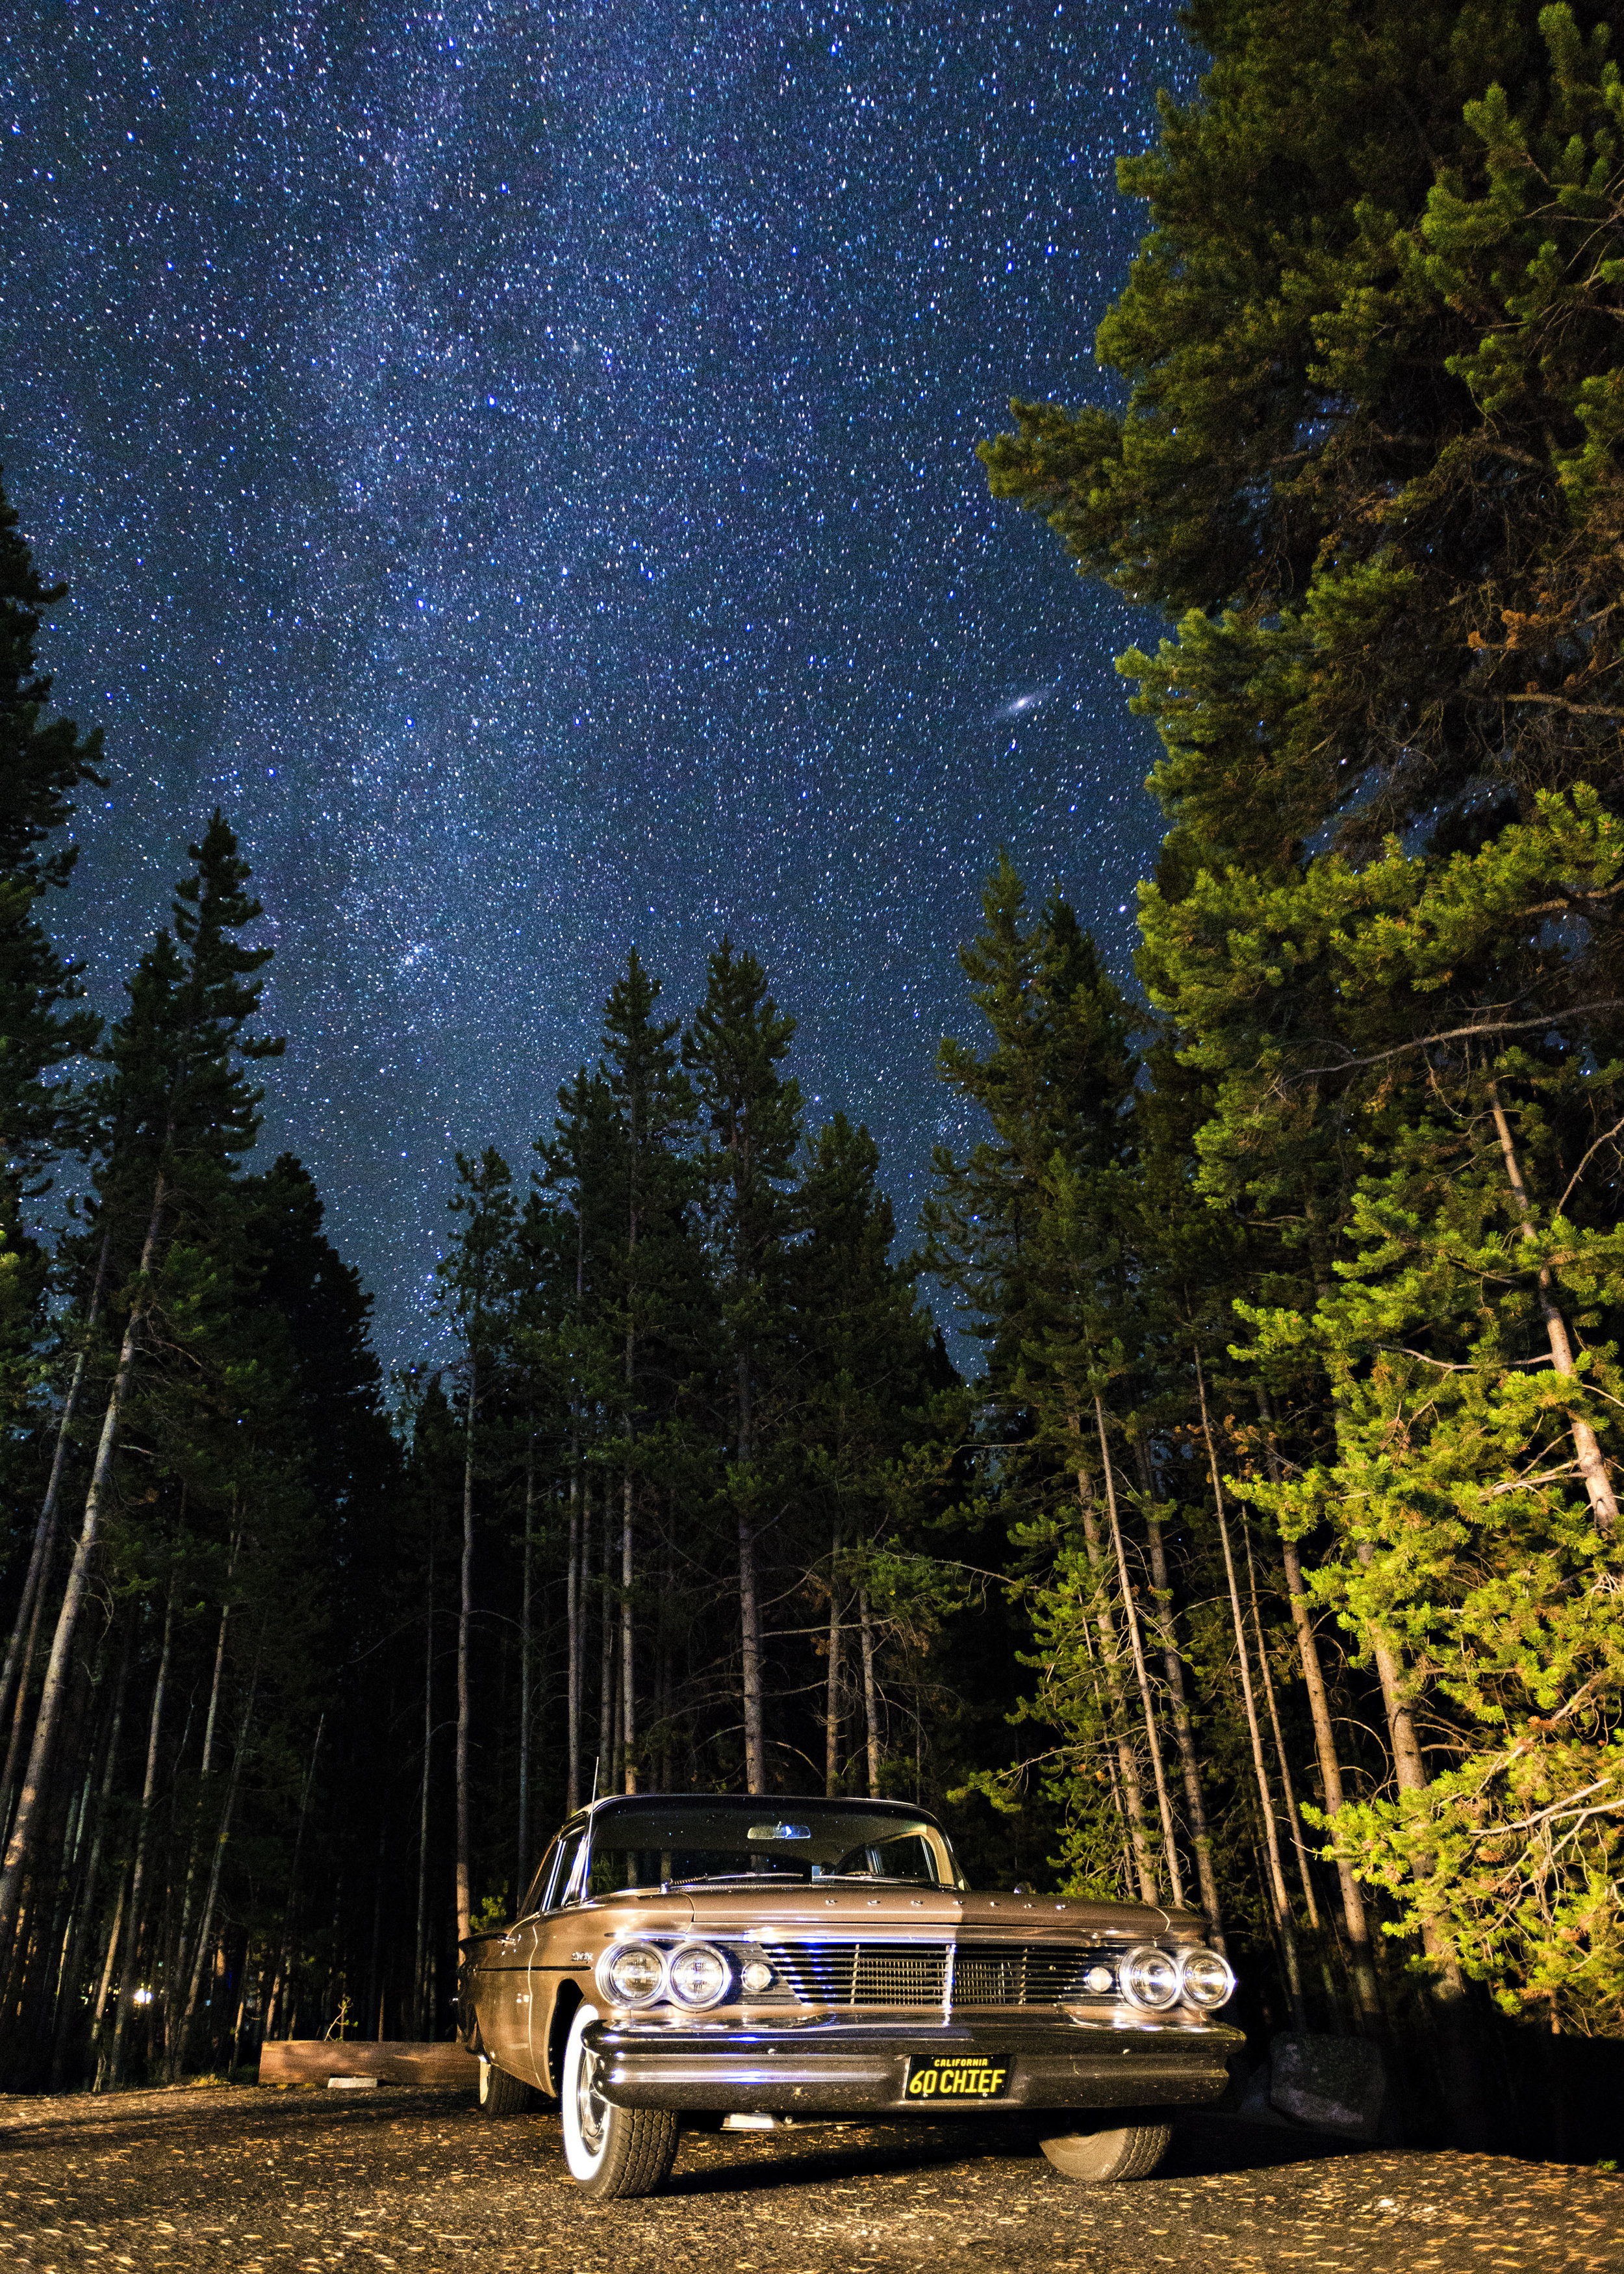 Milky Way and the Andromeda Galaxy setting above our campsite at Canyon Village in Yellowstone National Park. There are few darker spots in the lower 48 than Yellowstone. Just amazing. Nikon D800, Nikkor 17-35mm lens @ 17mm, ISO 2000, f2.8, 25sec.